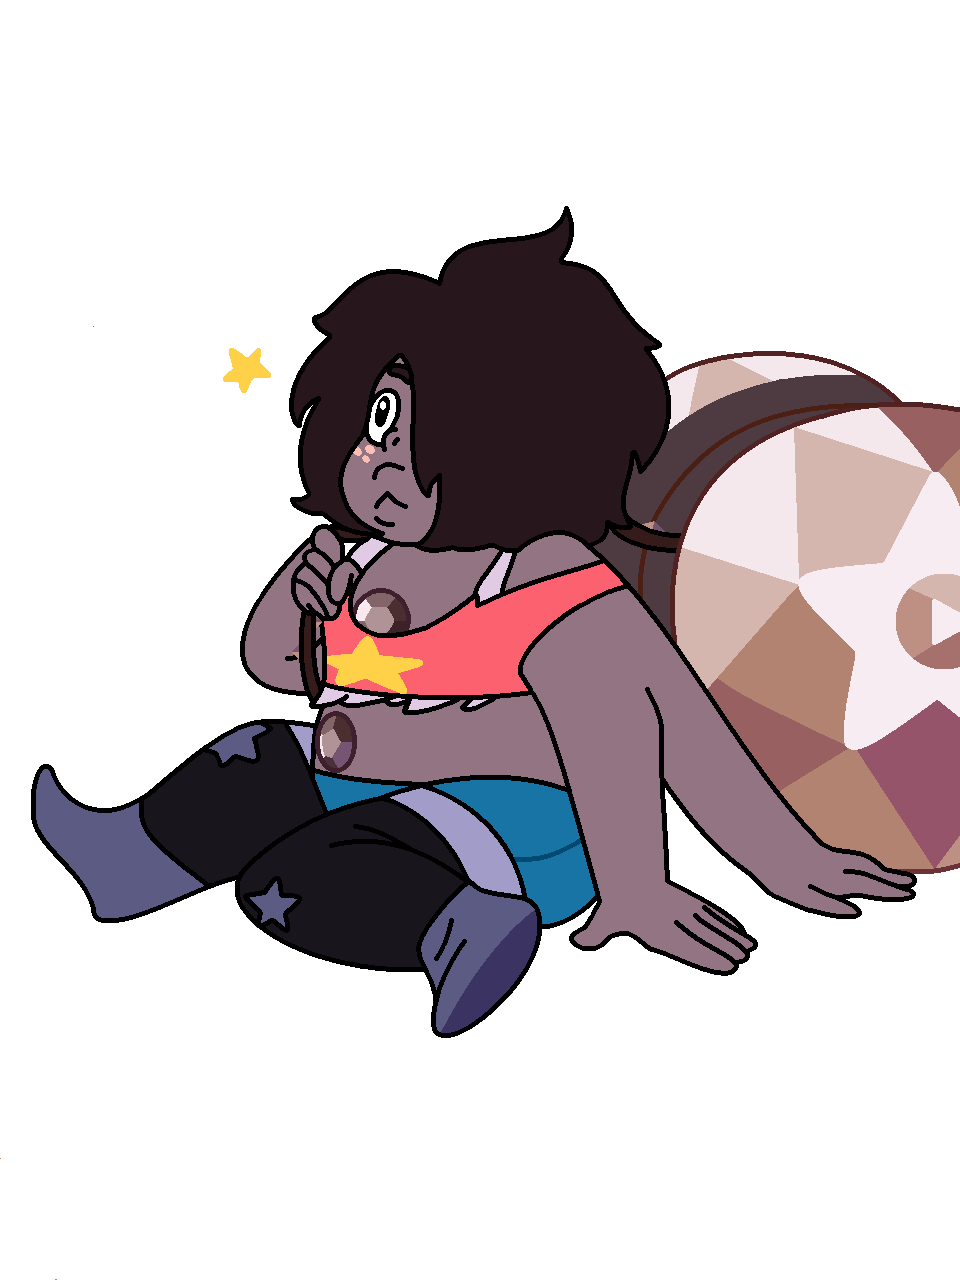 Here is the majestic Smoky Quartz holding their yoyo. Hope y'all enjoy. Thank you once again @yourcaptaina